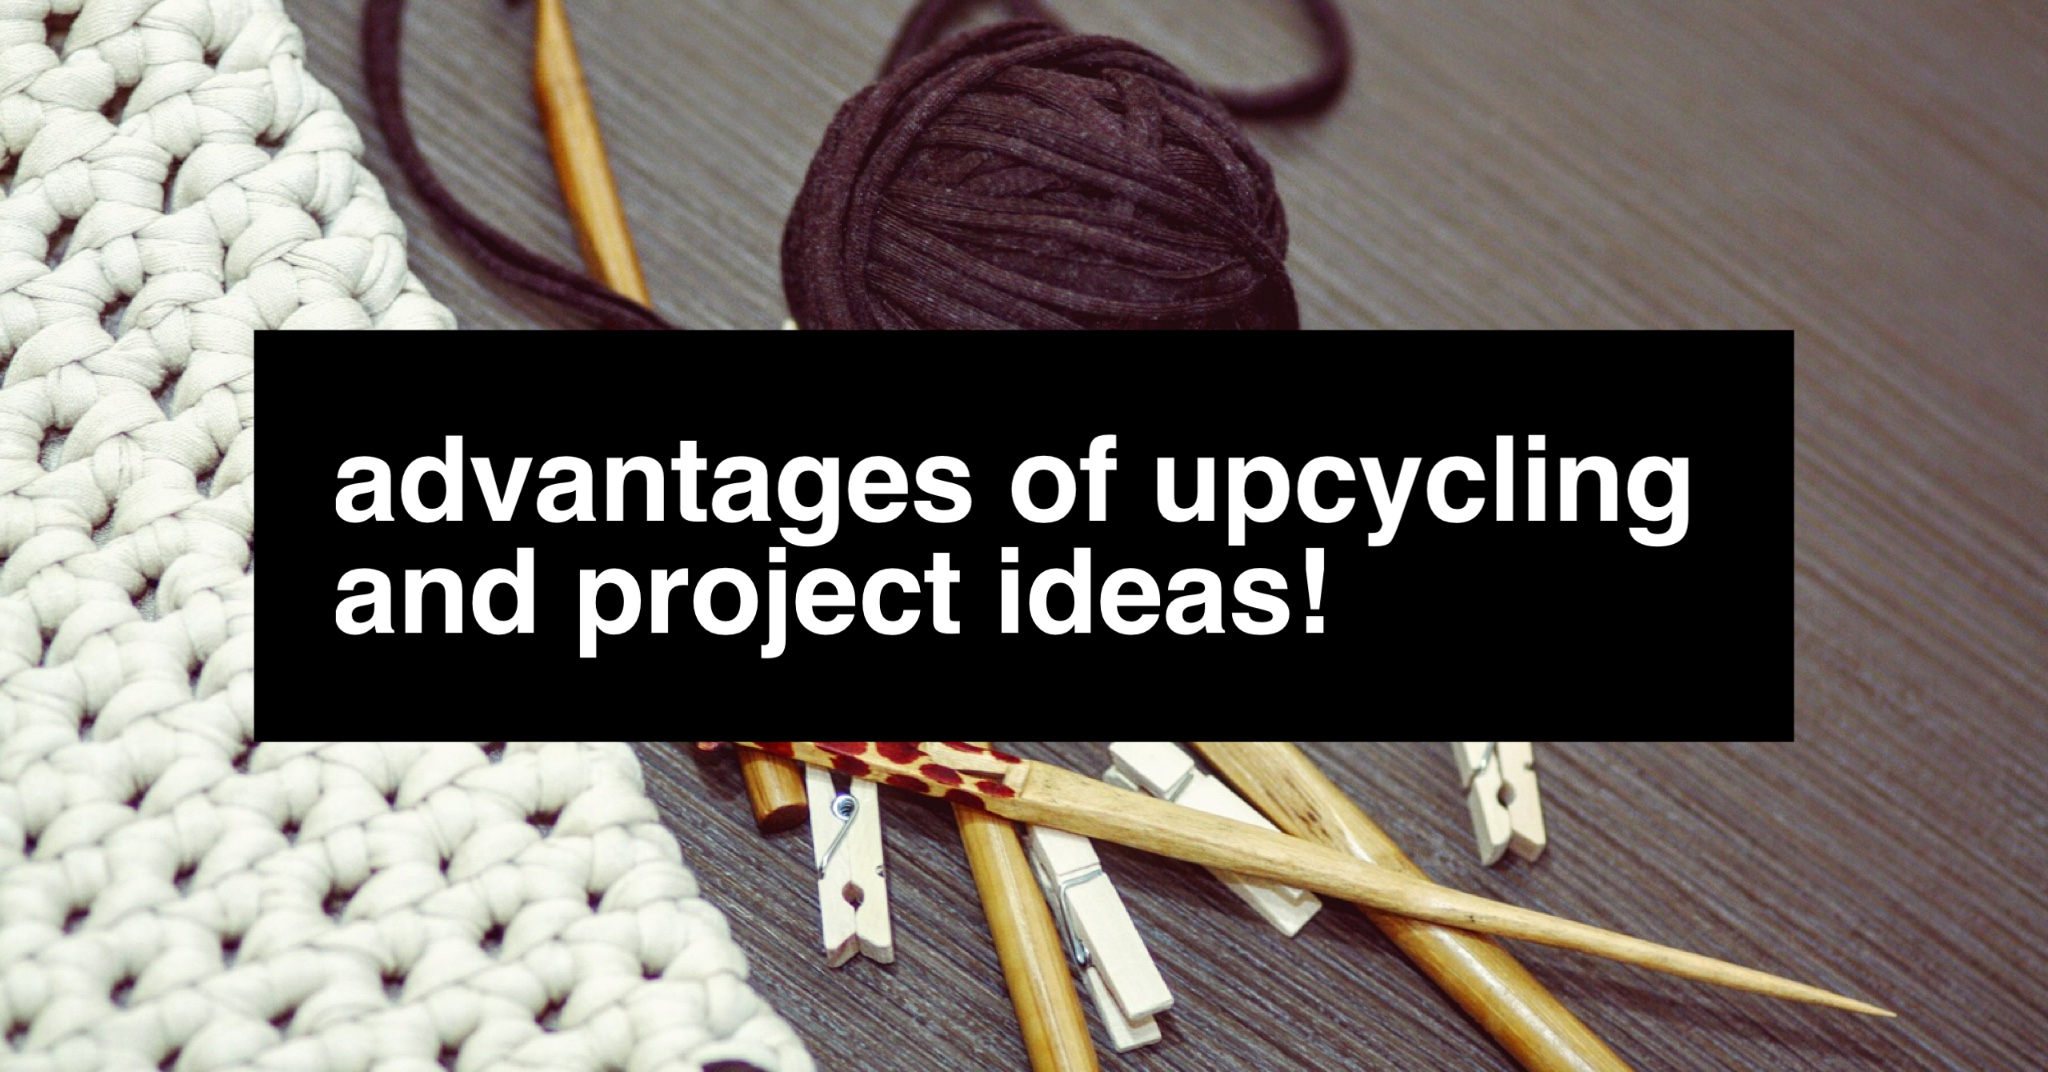 advantages-of-upcycling-and-project-ideas